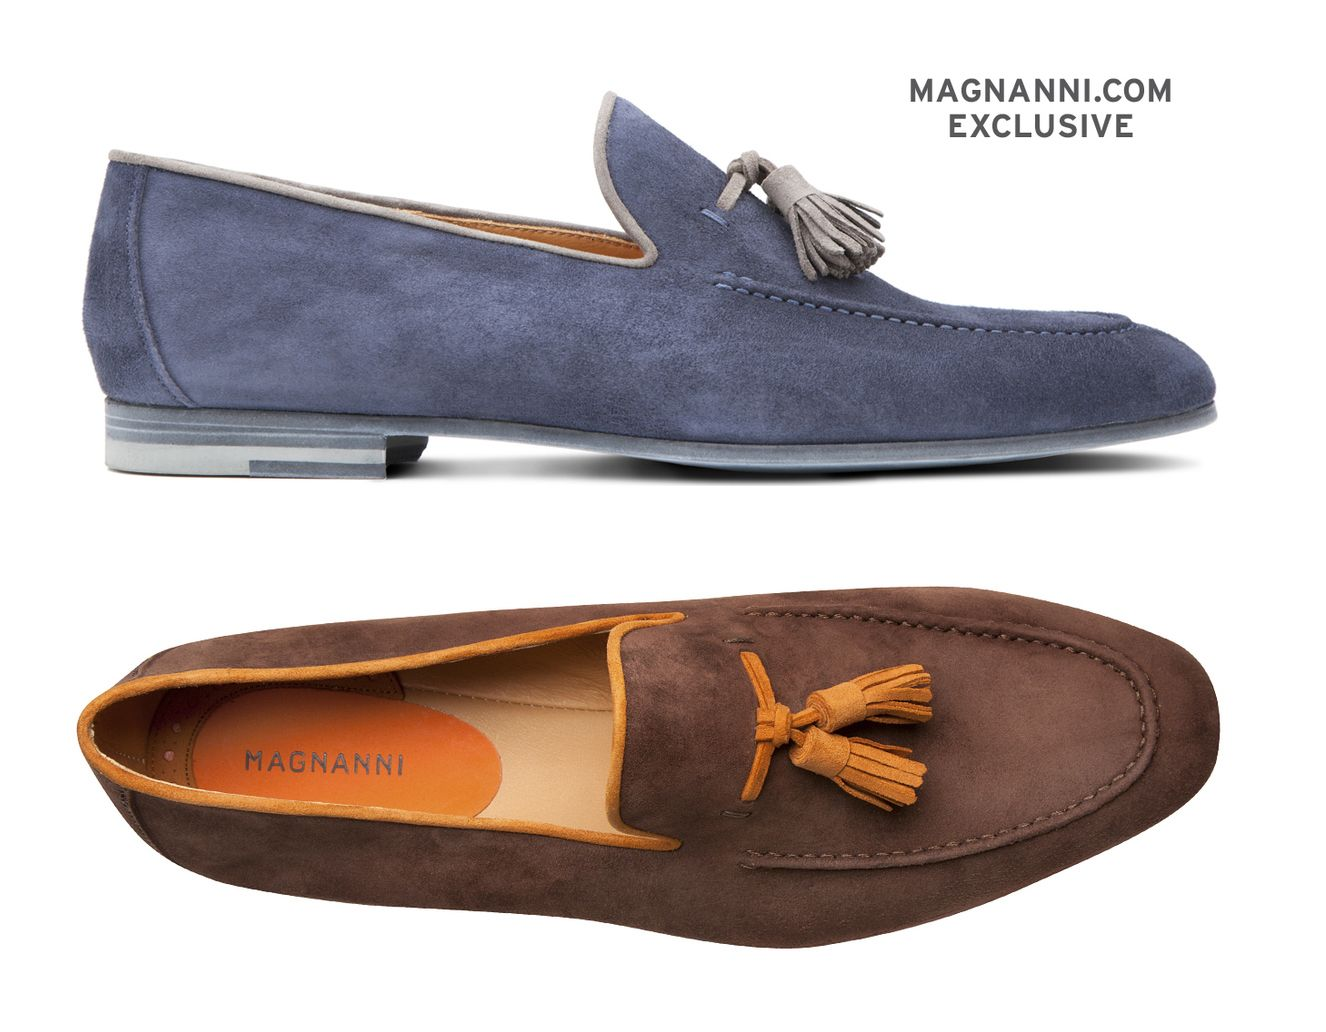 72047ca53c7 Magnanni Videl in Navy or Midbrown. Hand finished suede tassel loafer  exclusively available at www.magnanni.com search q videl  Magnanni  Loafers   MensShoes